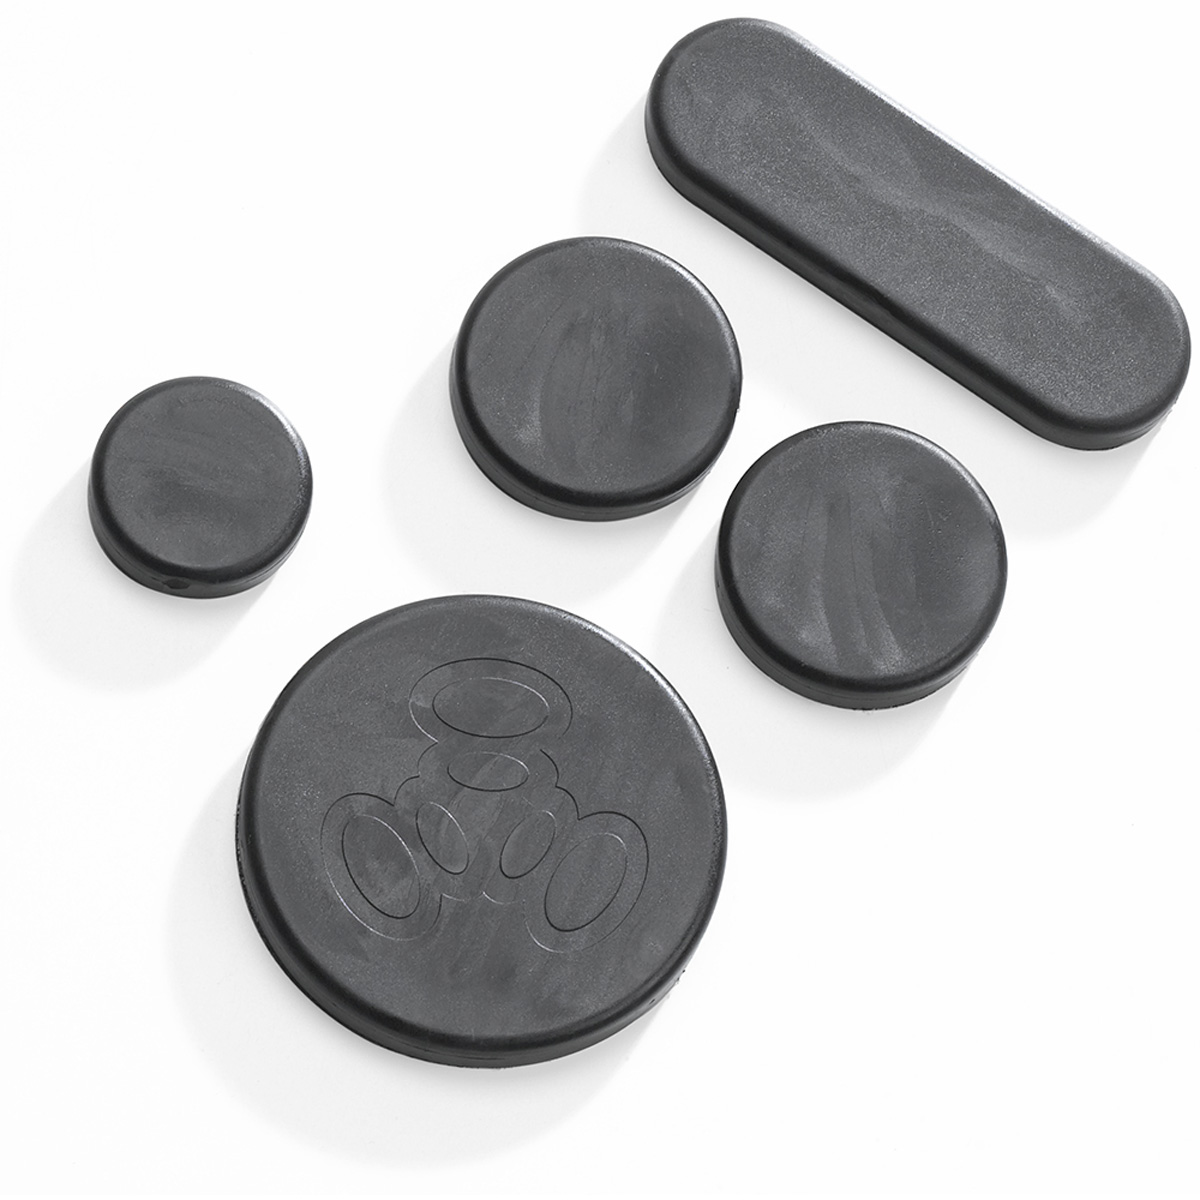 Triple Eight Sliders Longboard Gloves Replacement Puck Set - 0510